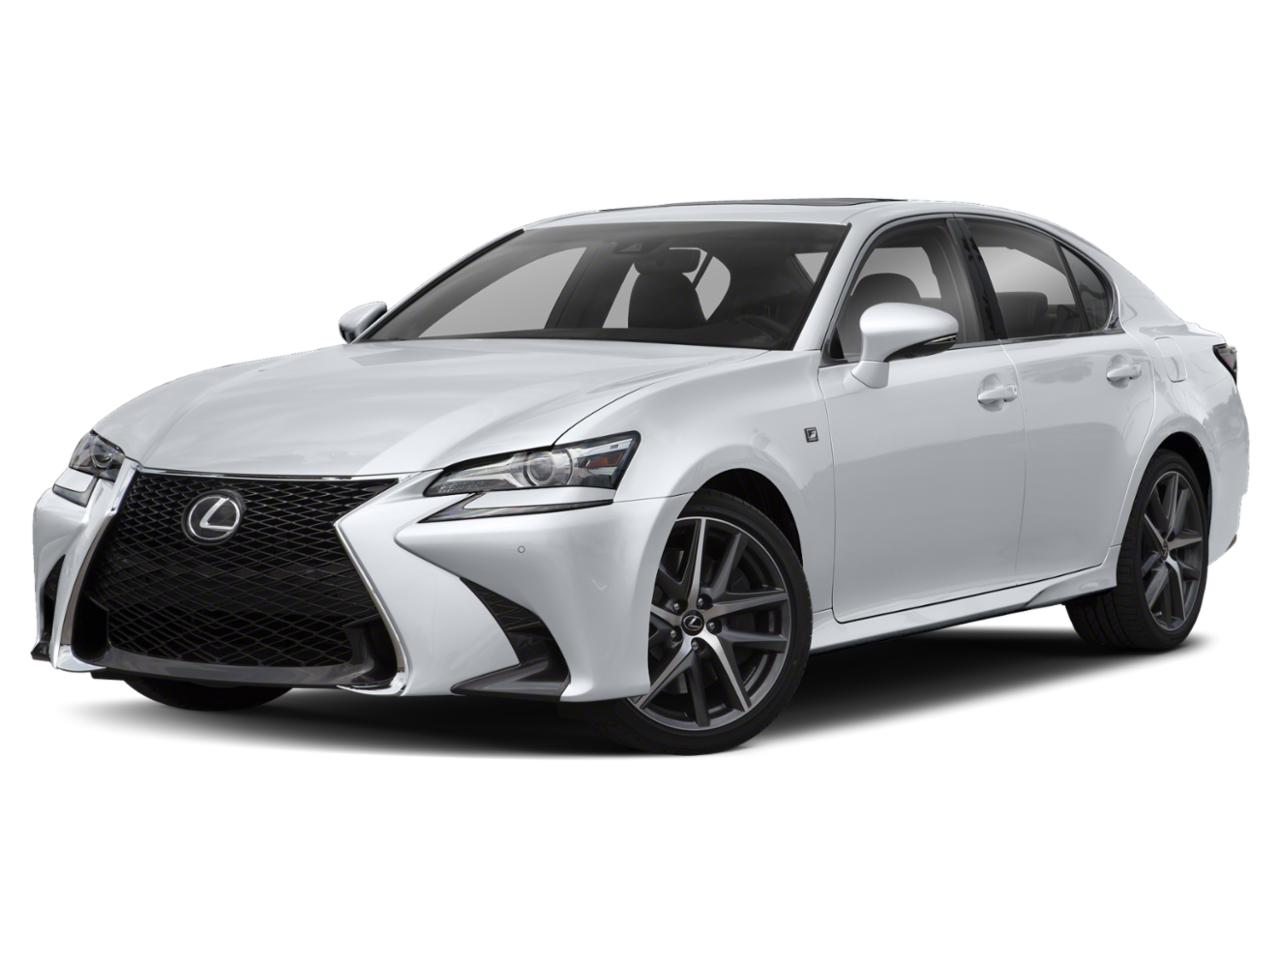 2019 Lexus GS 350 Vehicle Photo in Dallas, TX 75235